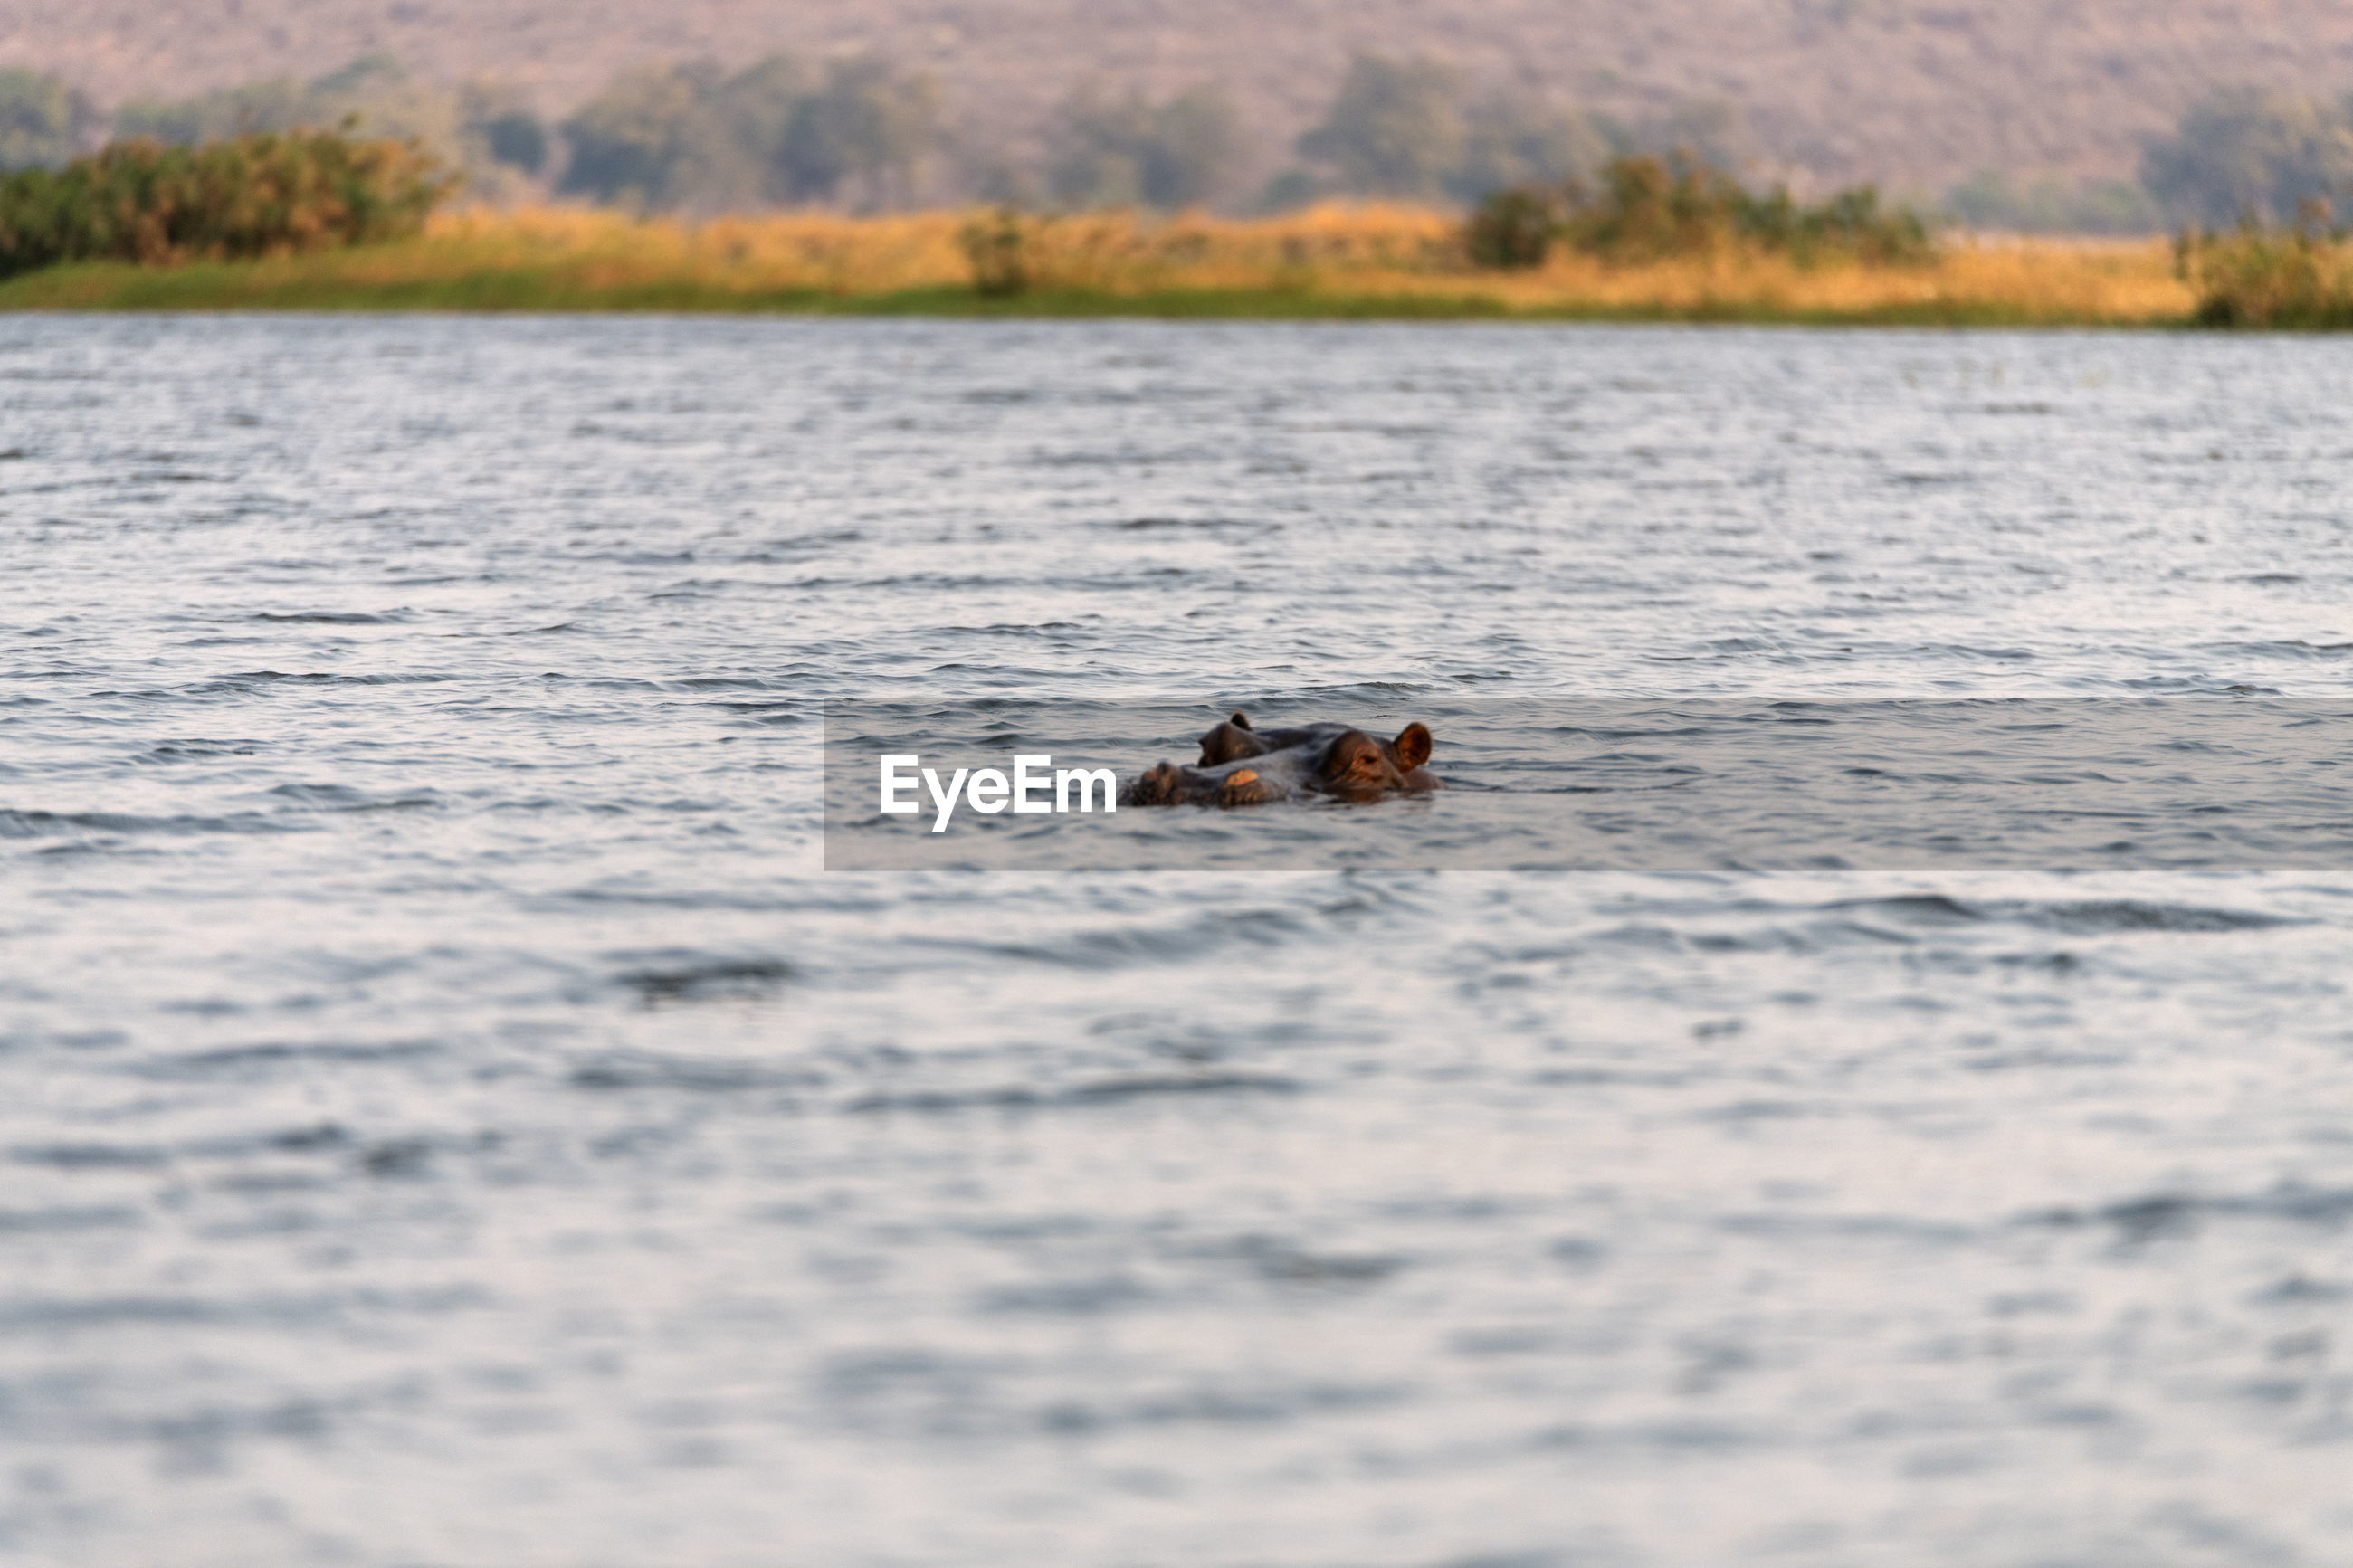 View of hippo swimming in lake